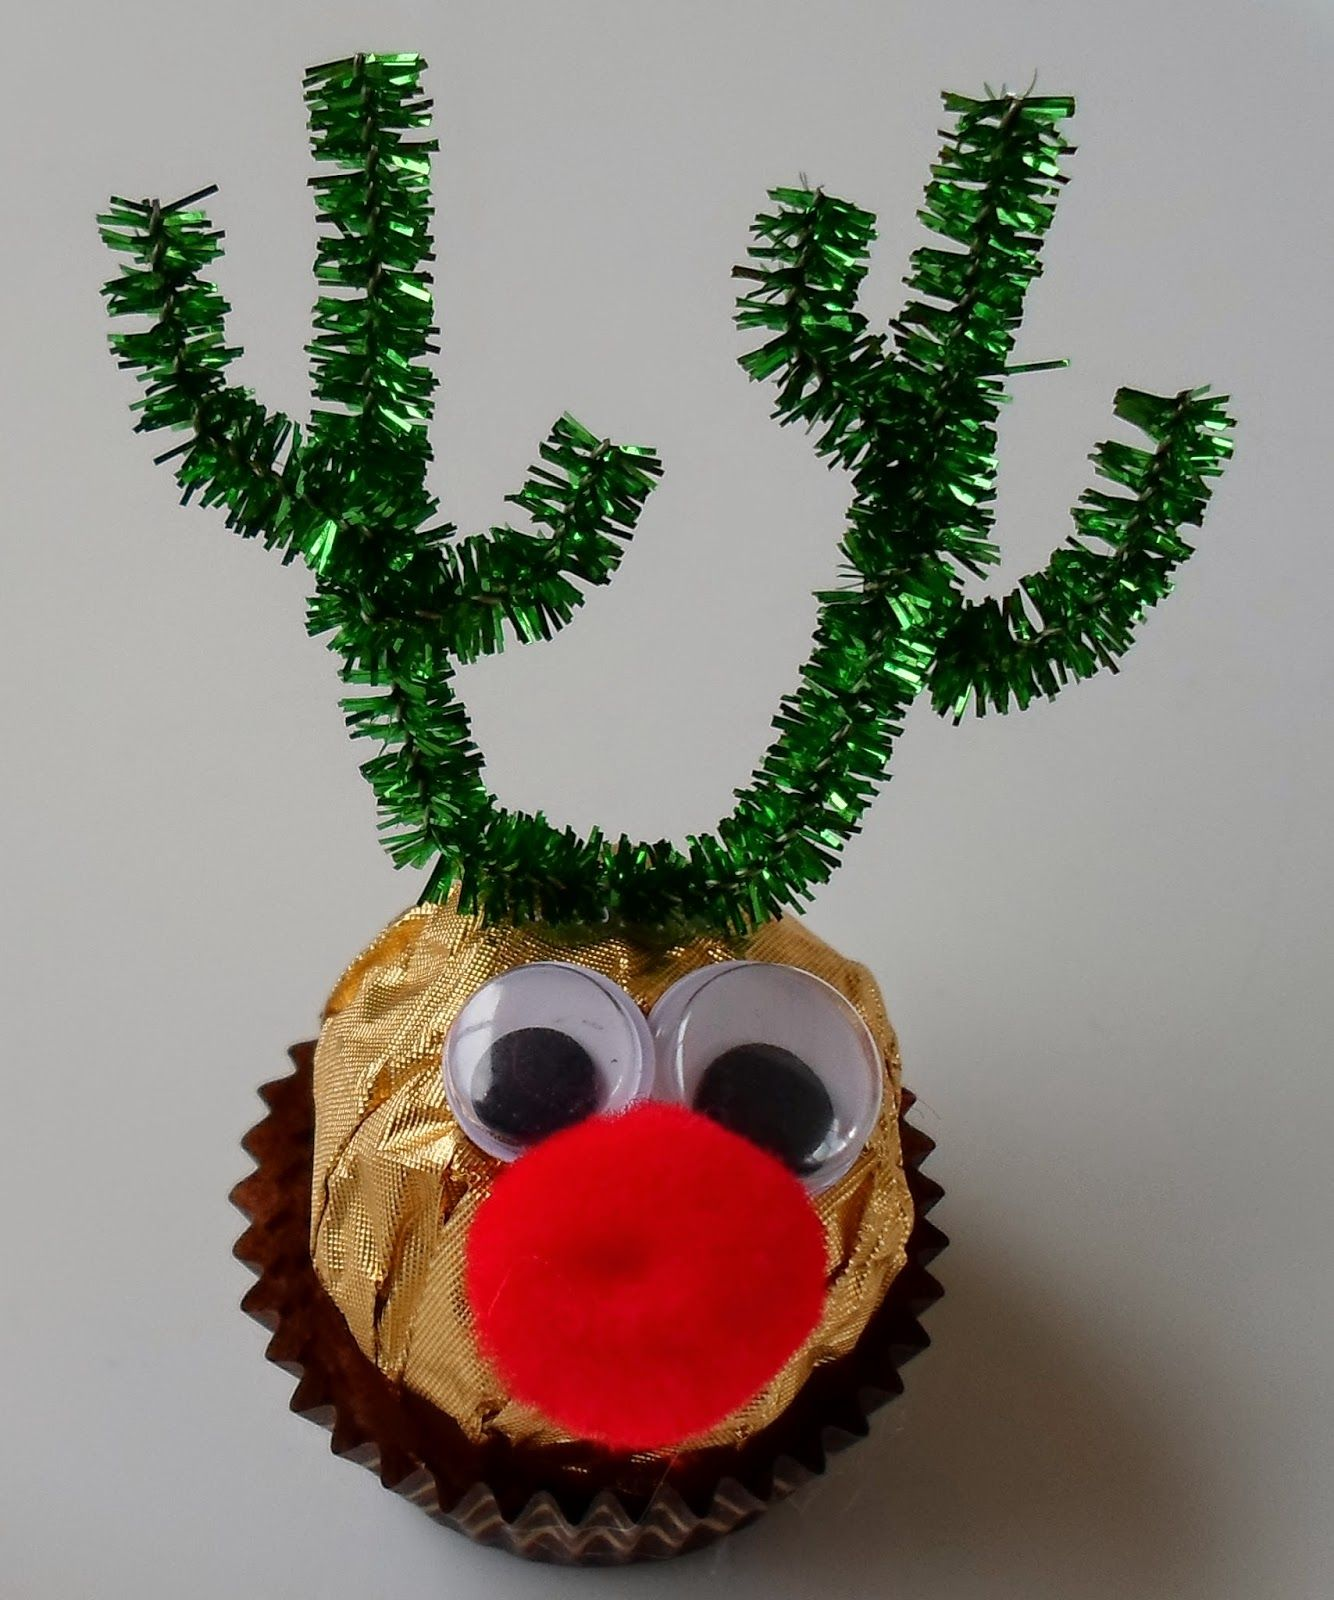 Ferrero Rocher Basteln Happier Than A Pig In Mud: Ferrero Rocher Reindeer